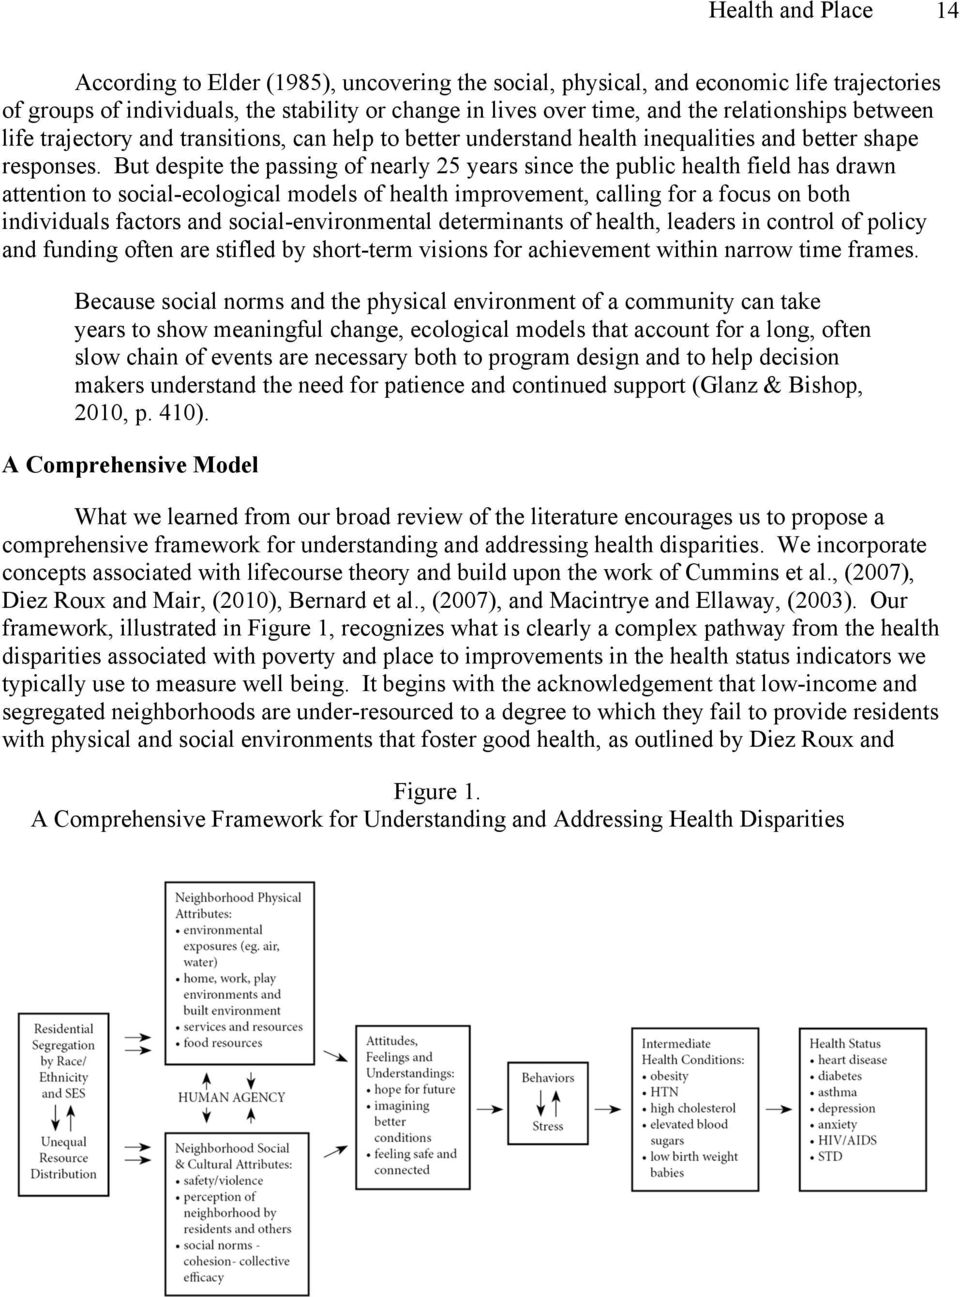 But despite the passing of nearly 25 years since the public health field has drawn attention to social-ecological models of health improvement, calling for a focus on both individuals factors and